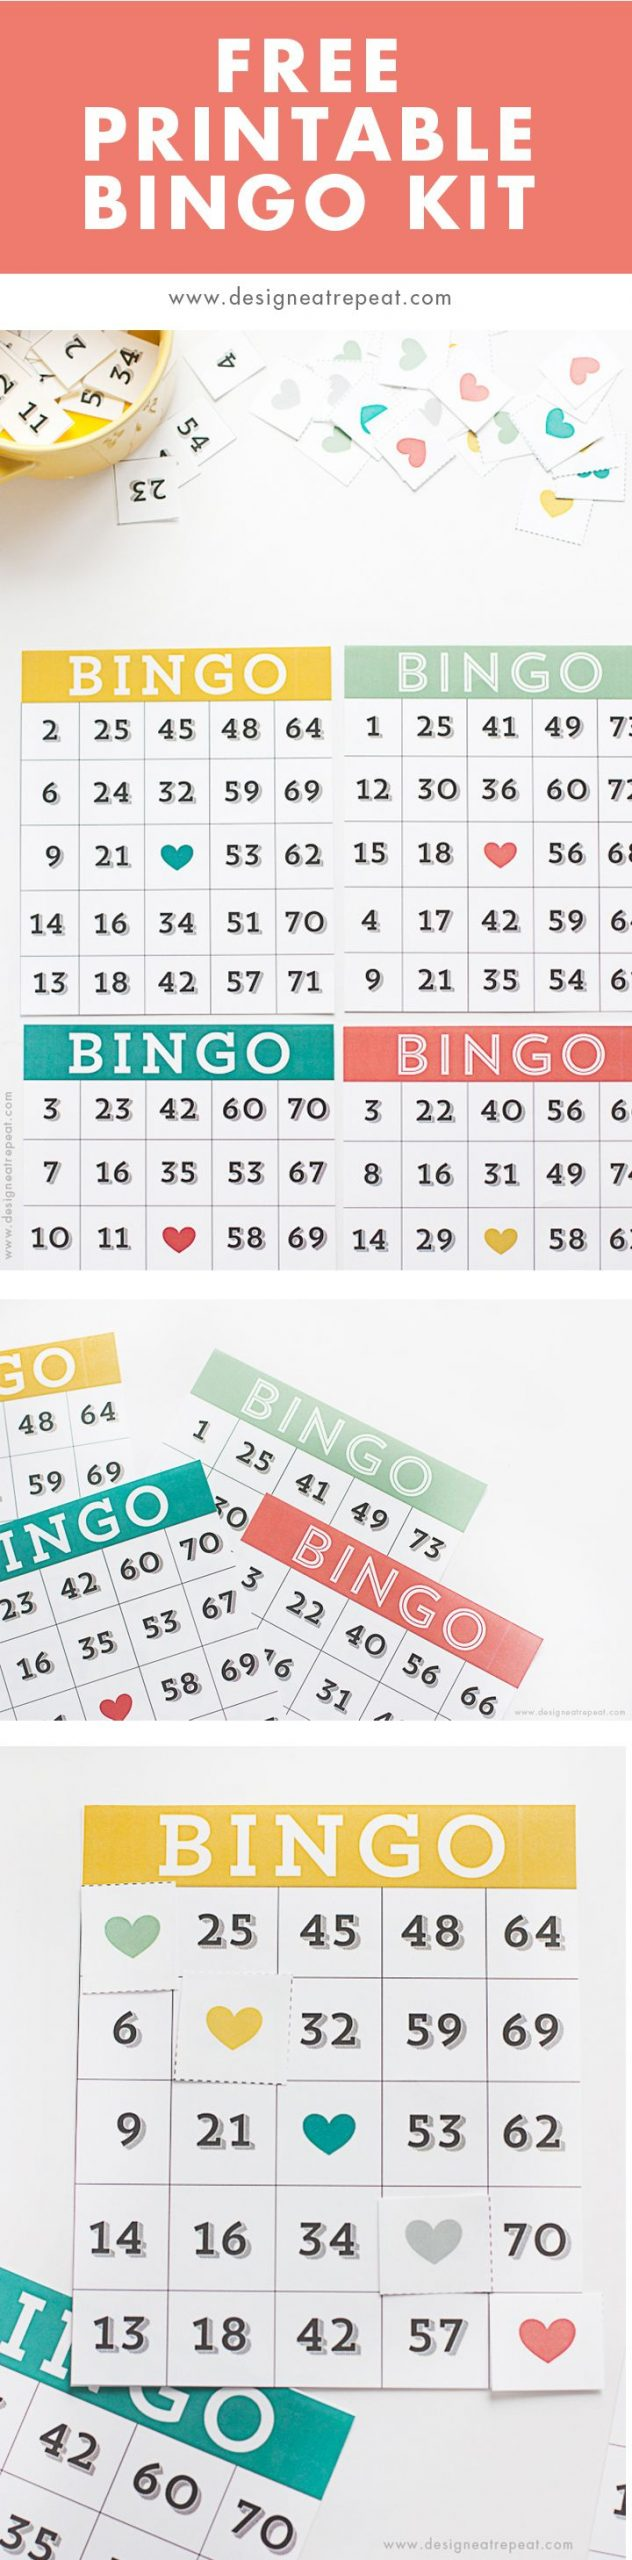 Looking For A (Free) Family Game Night Idea? This Printable